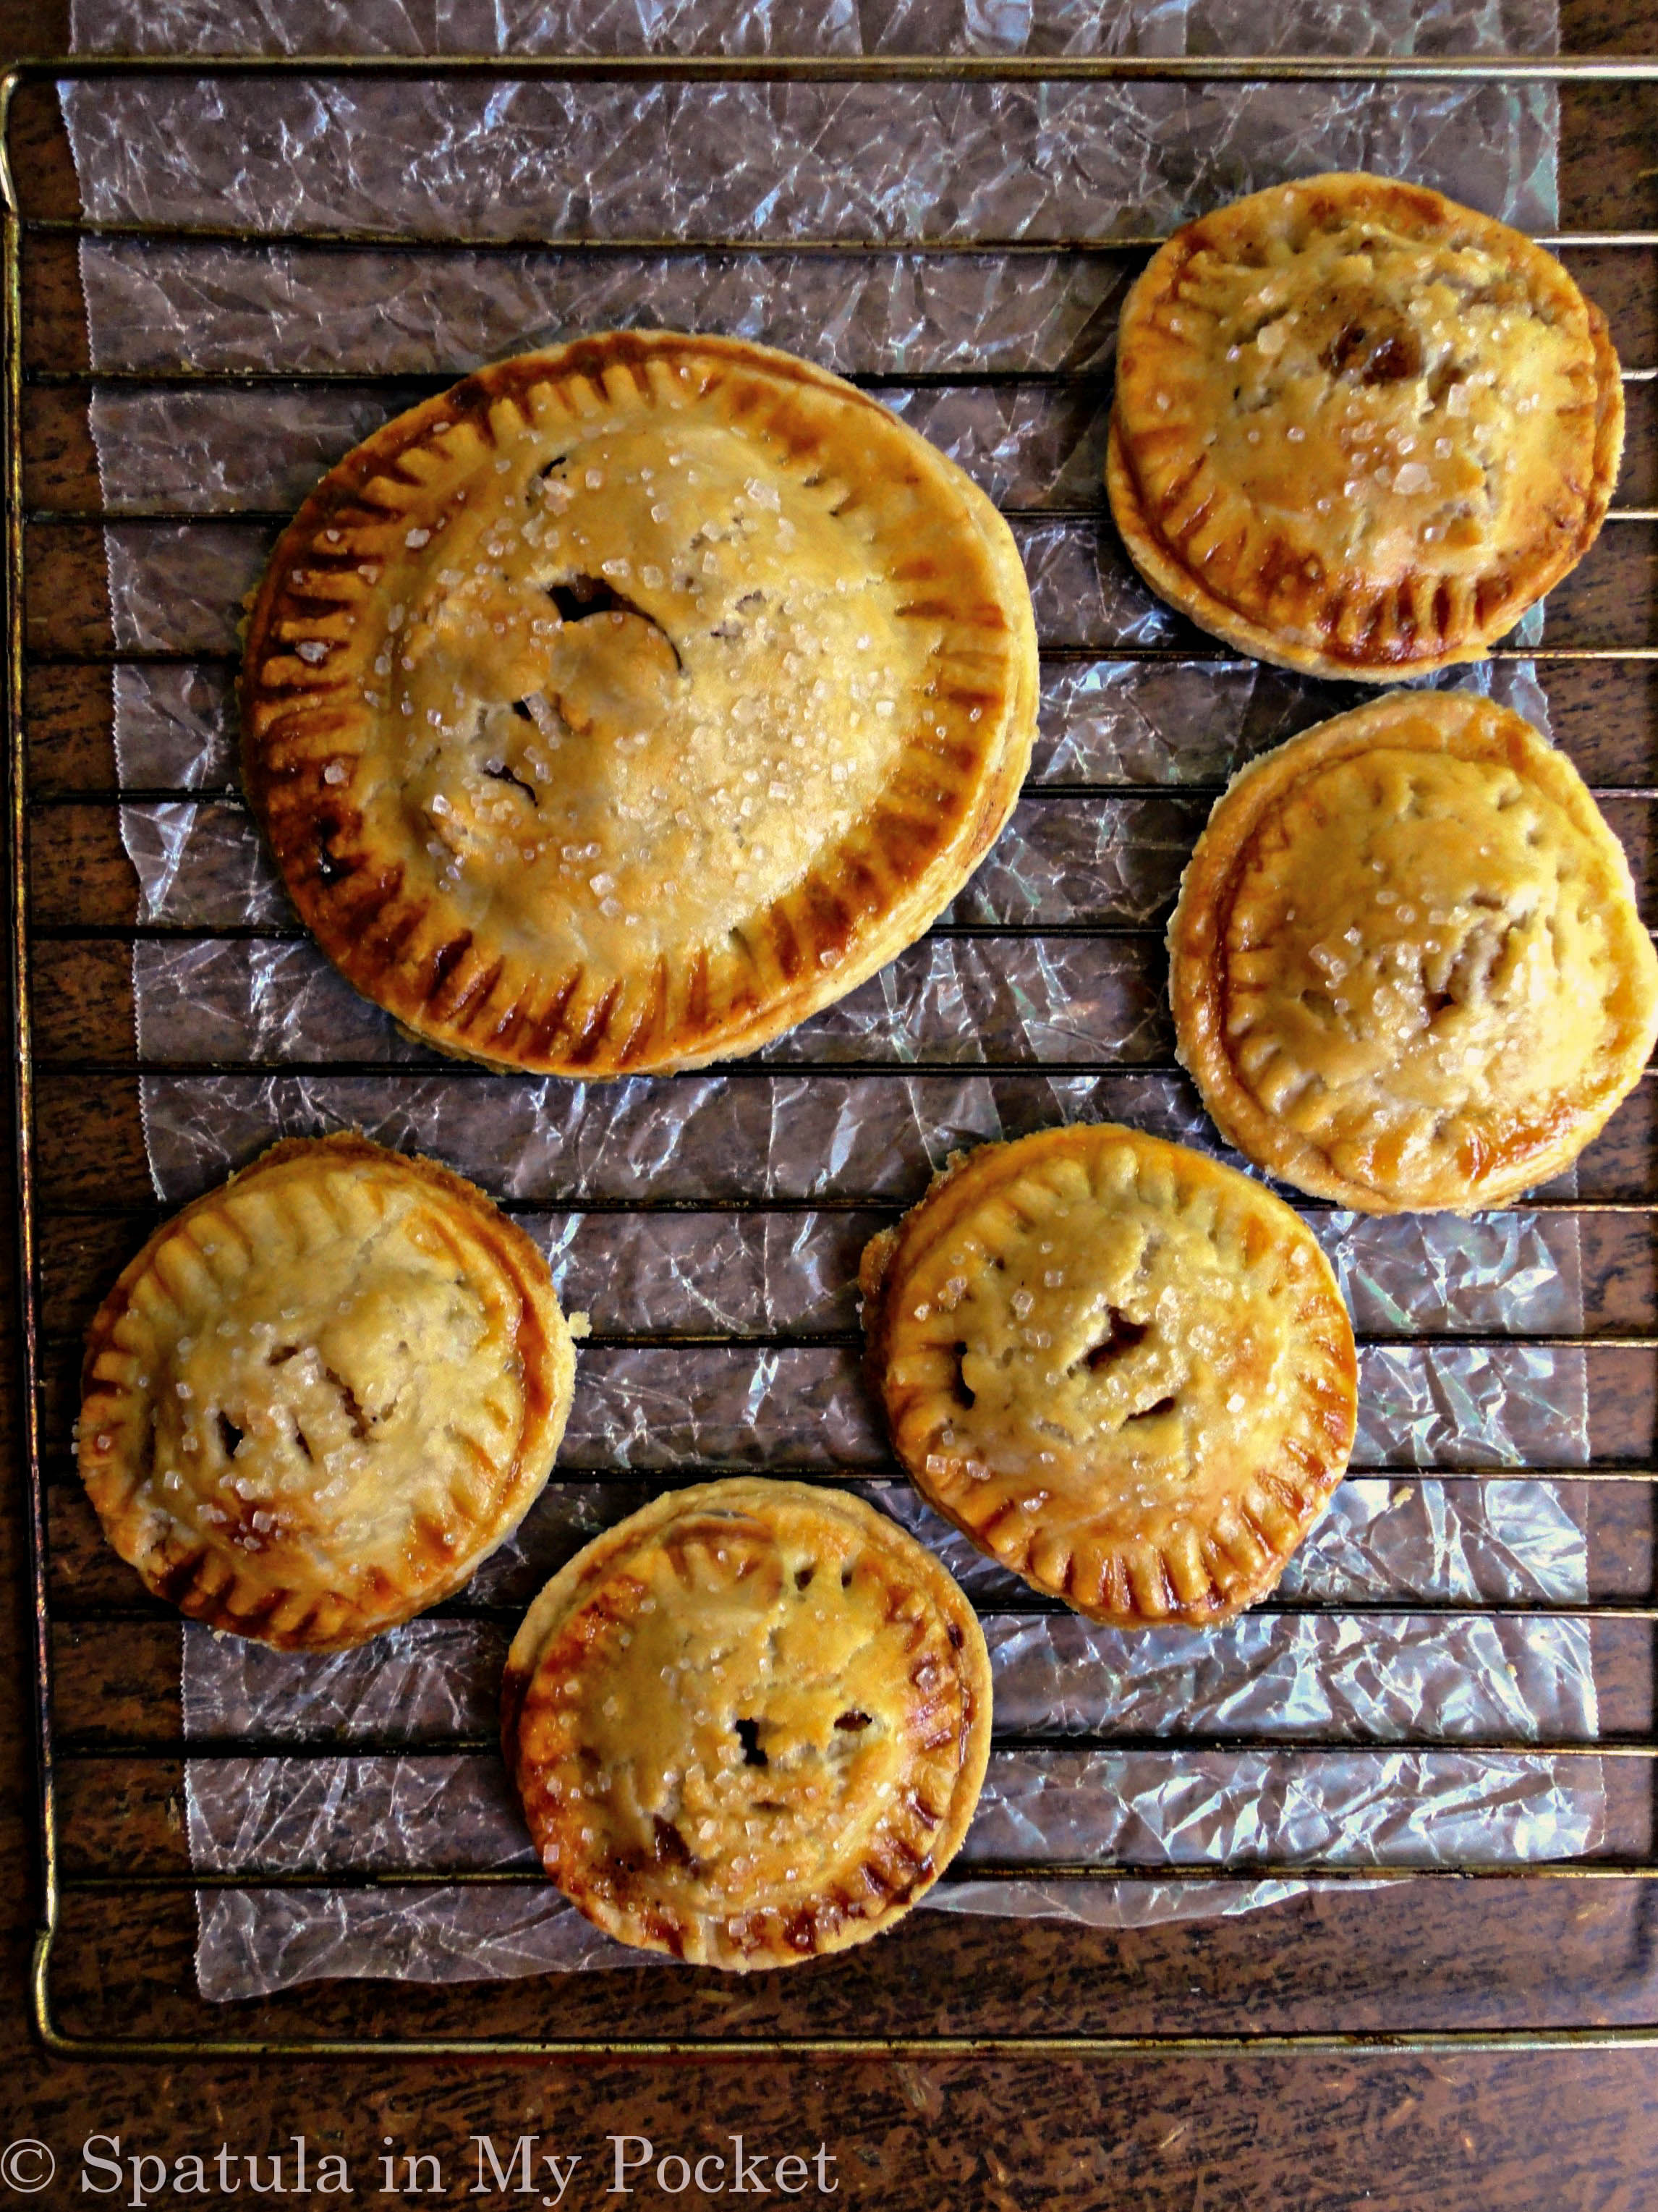 Mini apple pies. The flaky buttery crust filled with a cinnamon scented apple filling should definitely be on your to-bake list this winter!